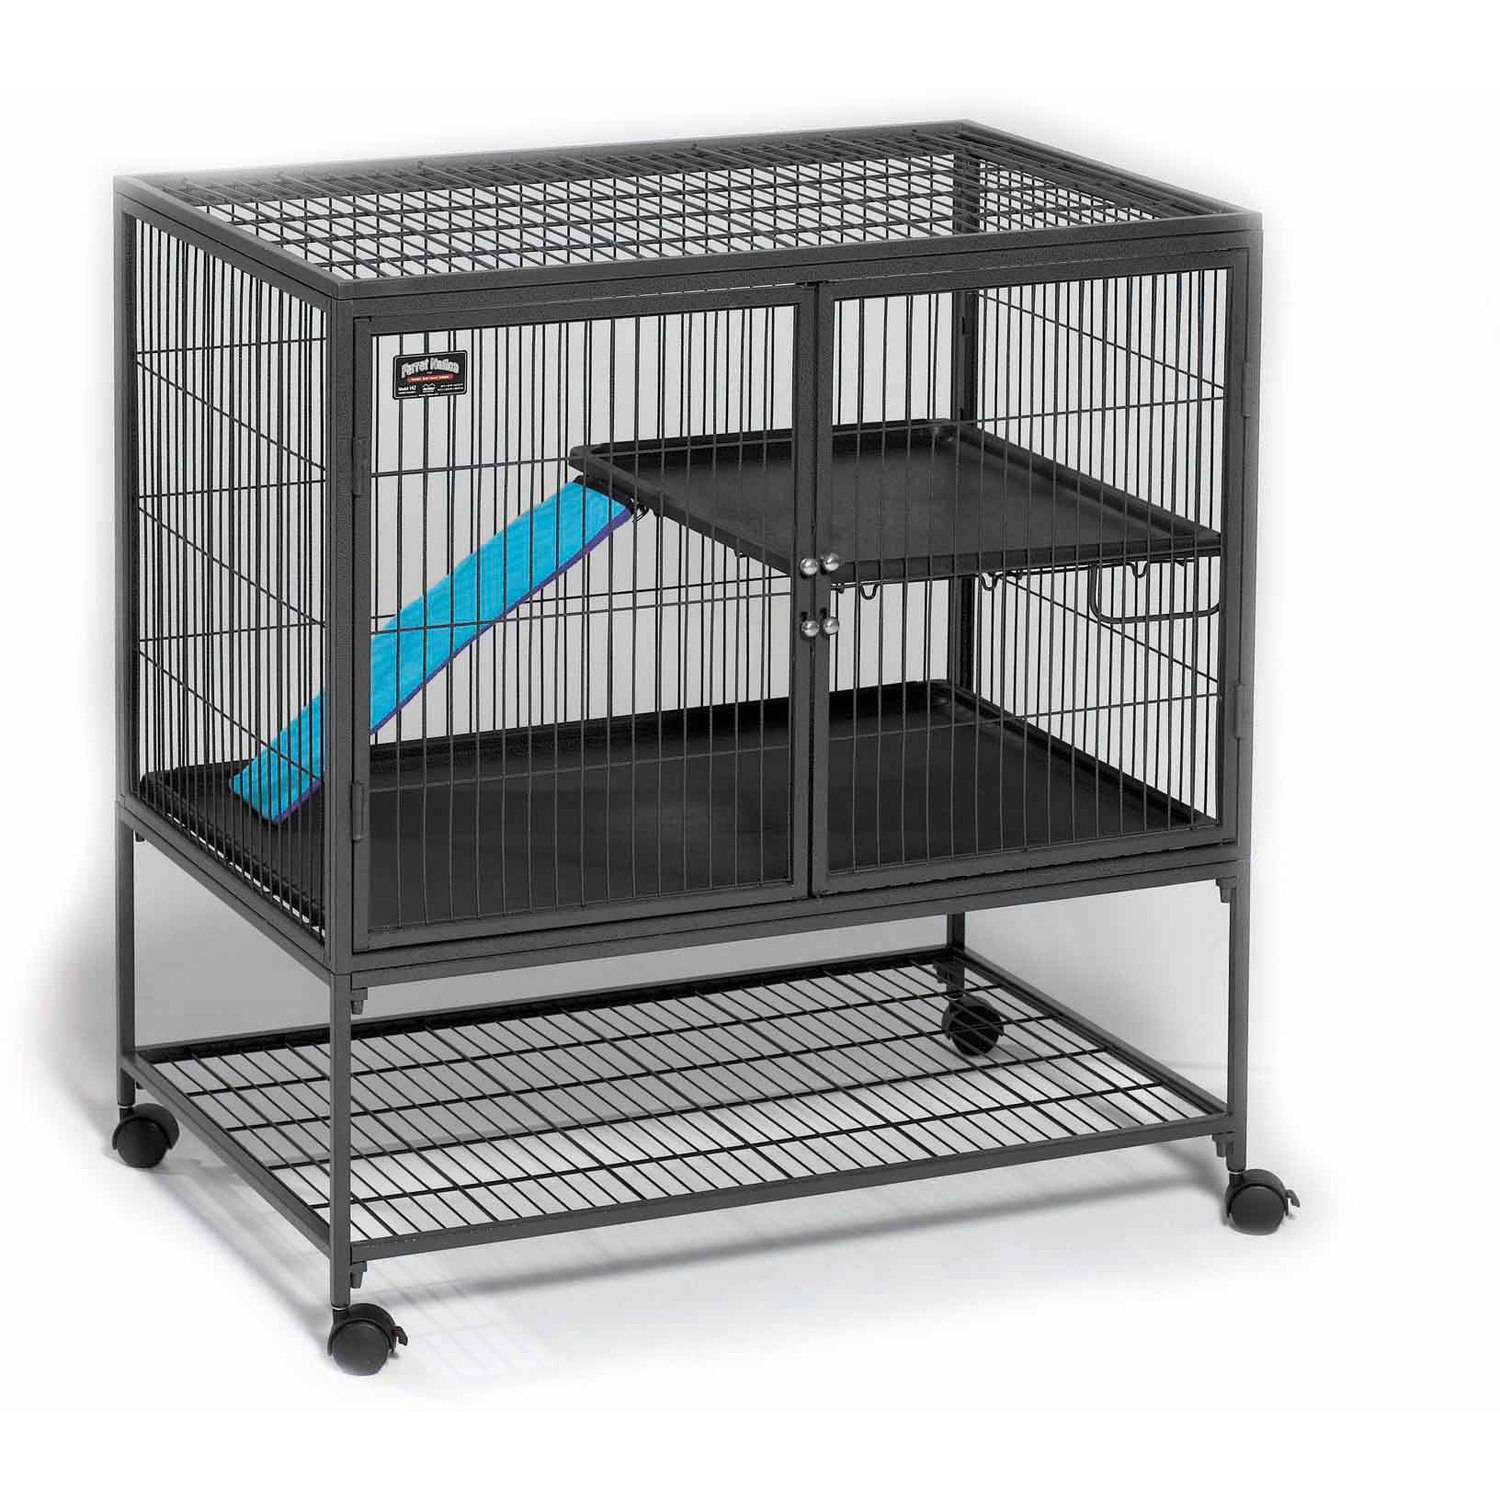 midwest deluxe ferret nation double unit ferret cage walmart commidwest deluxe ferret nation single unit ferret cage